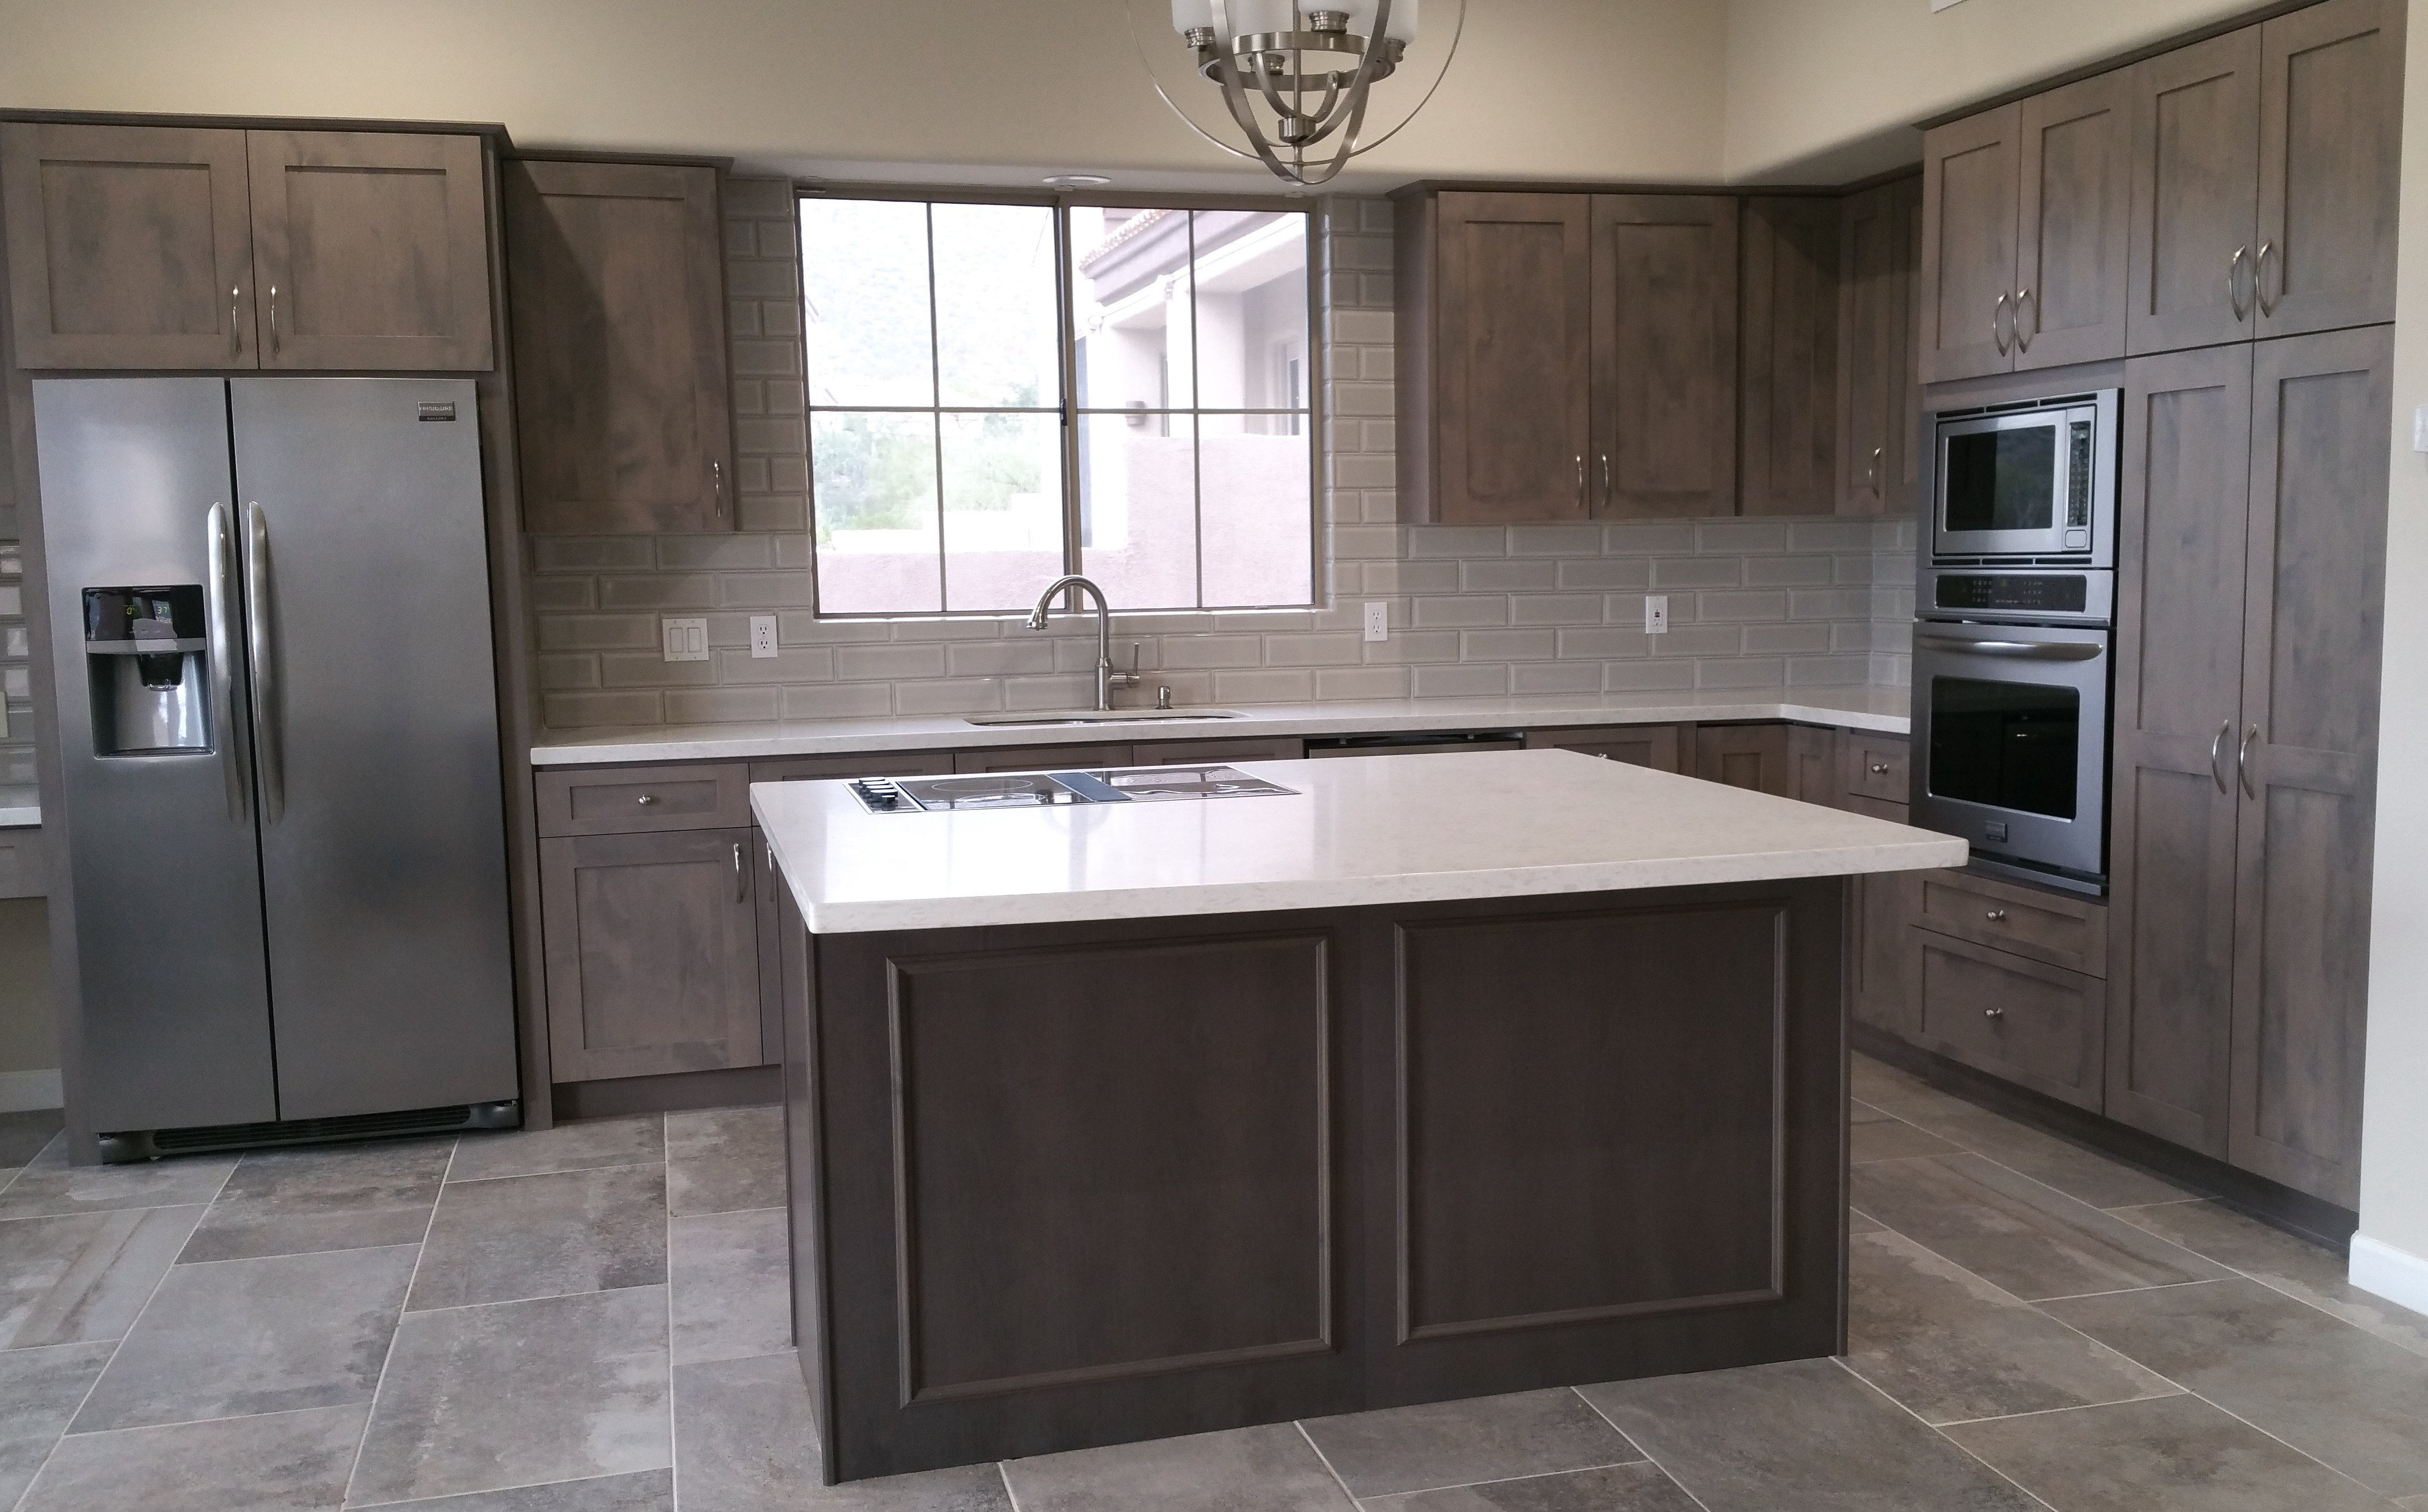 average cost of new kitchen cabinets rustic cabinet better than kitchens | refacing ...